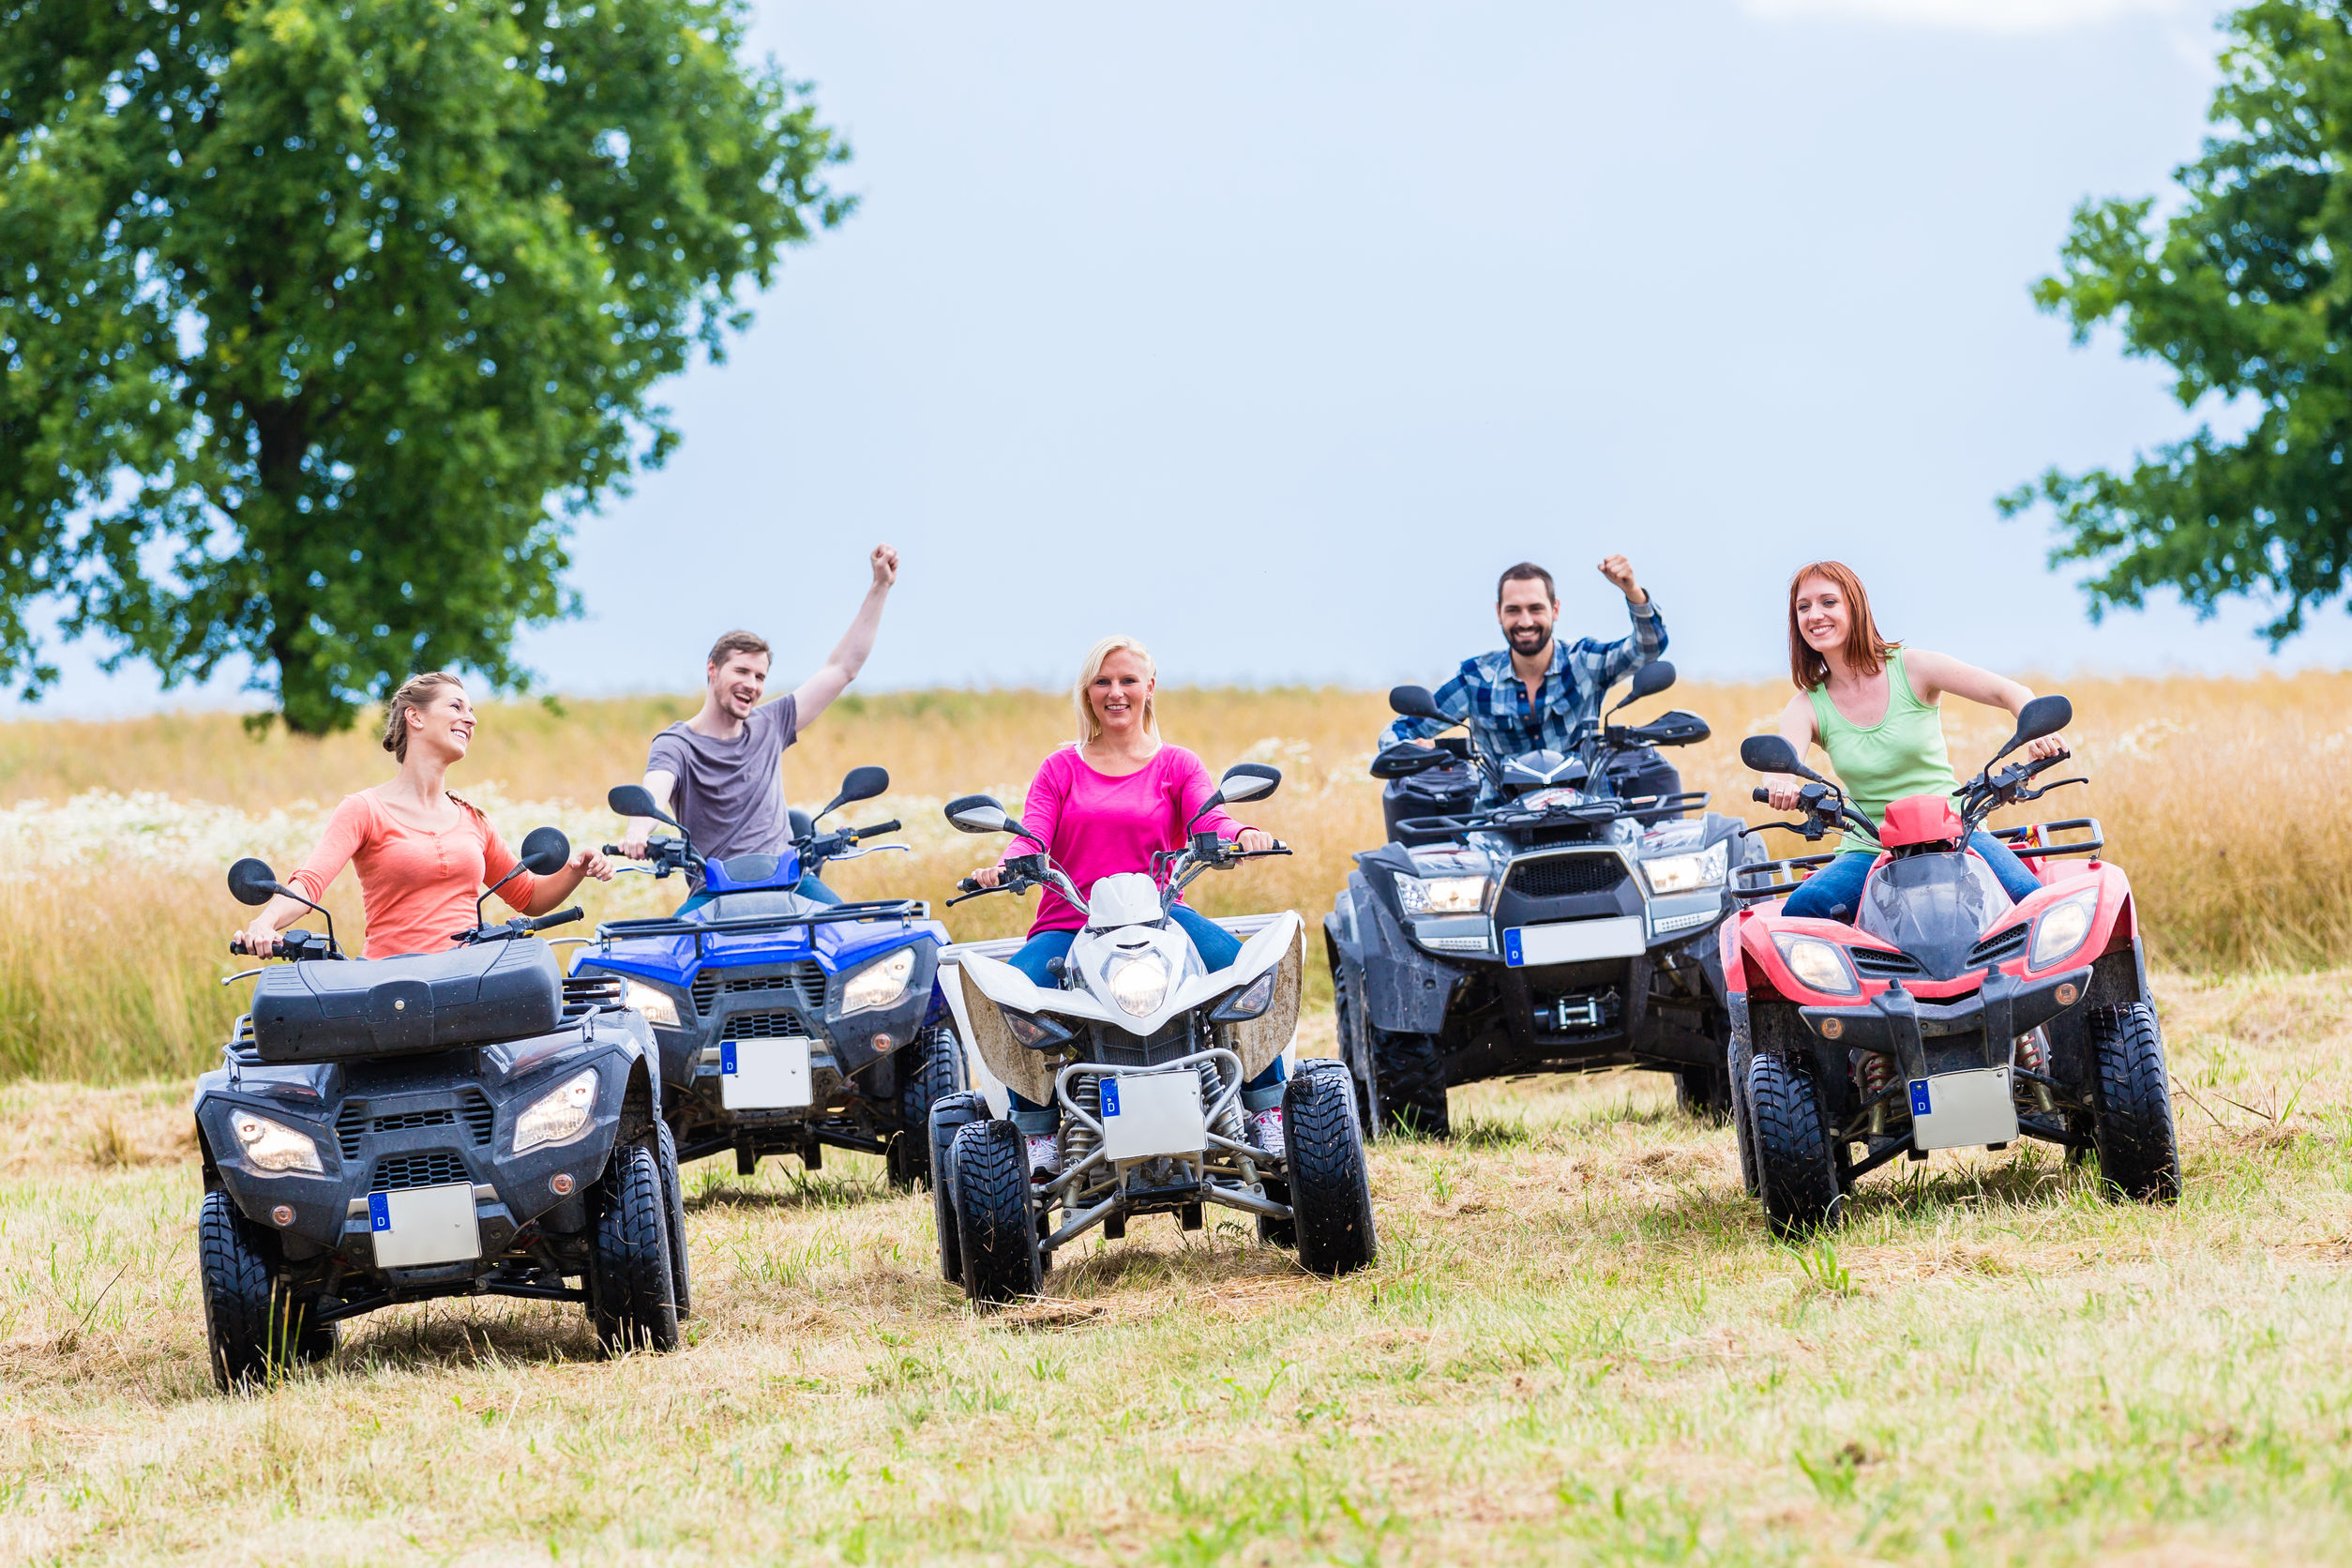 Park City, Heber City, ATV Insurance